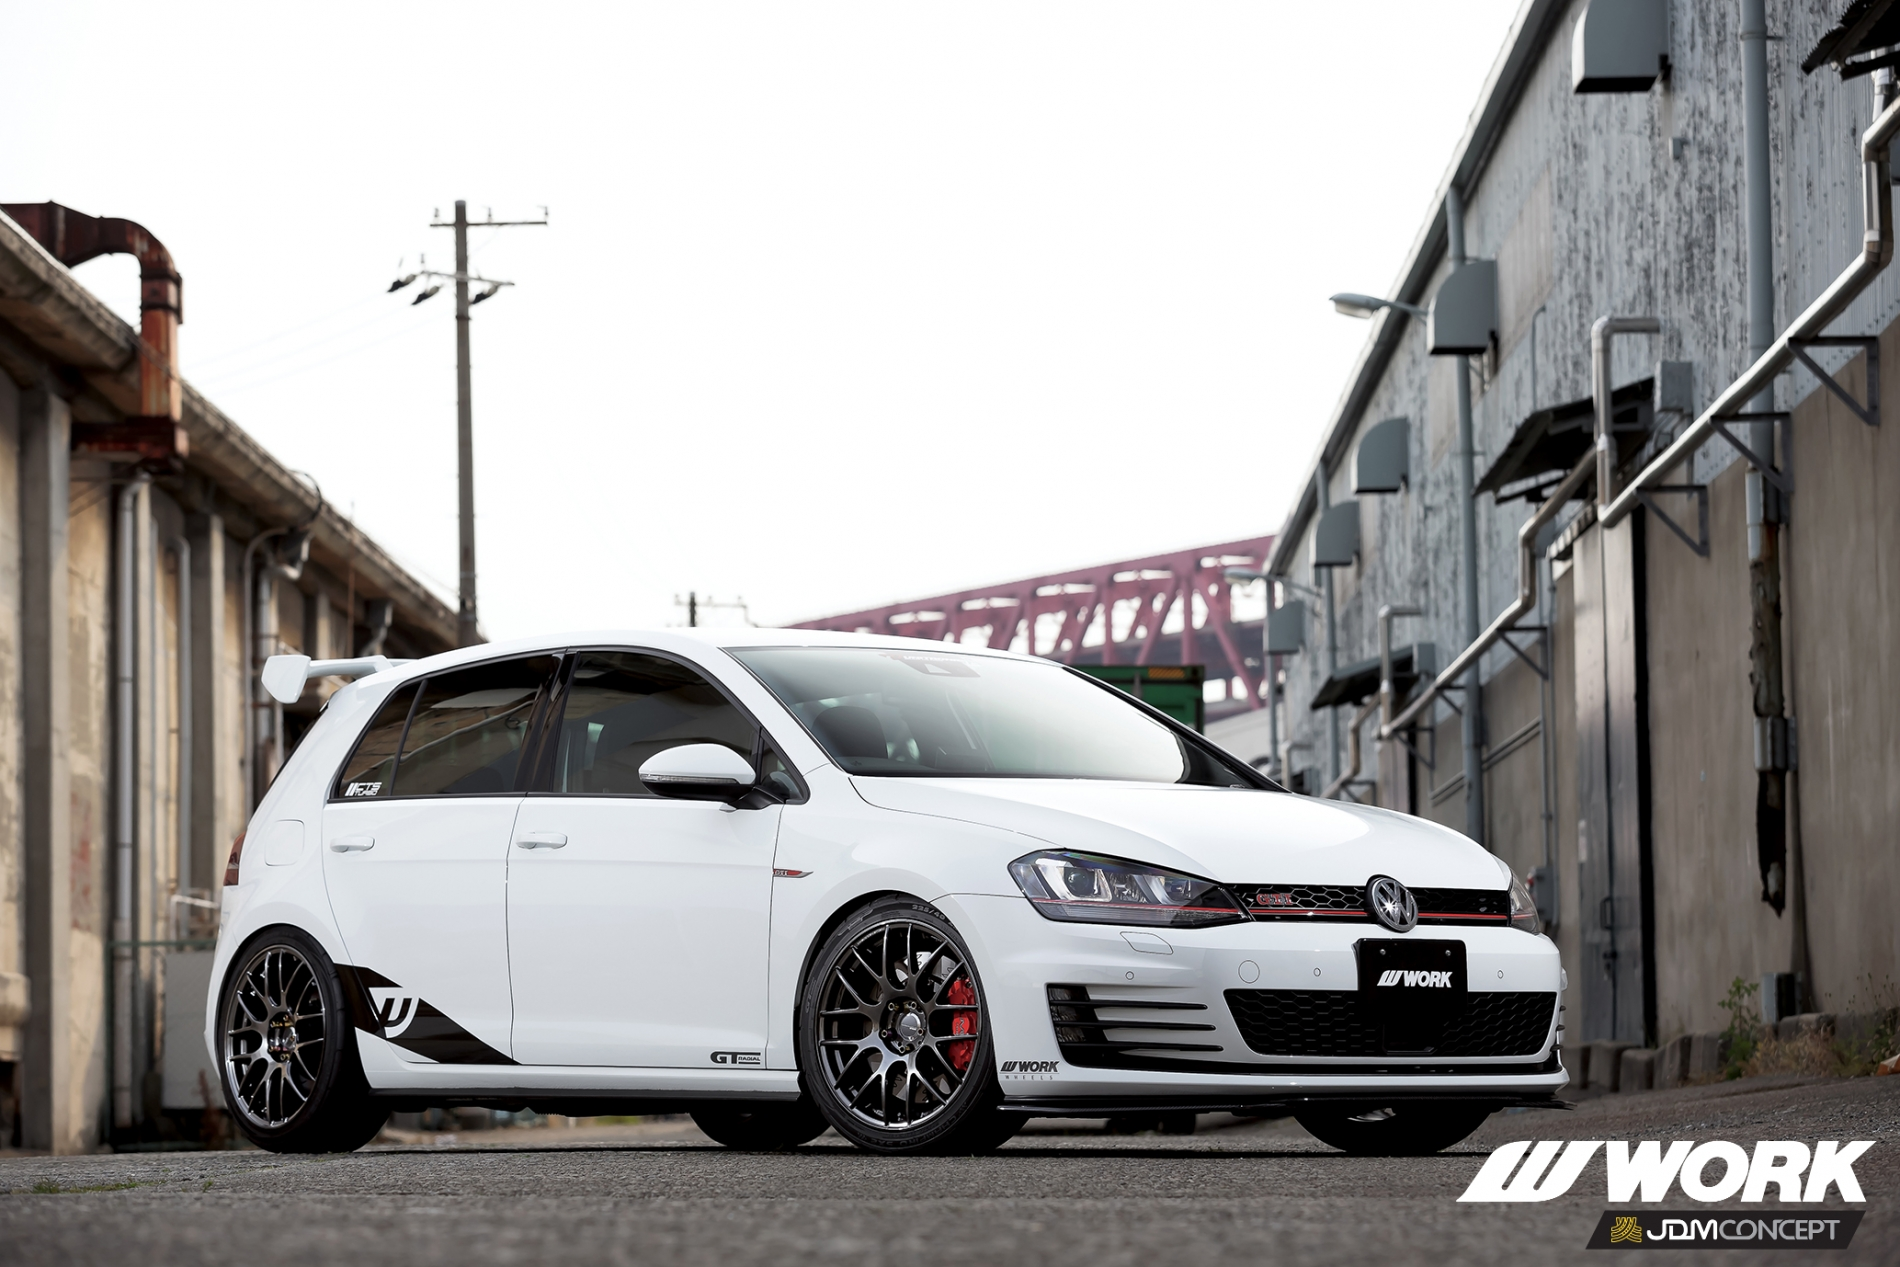 Subaru Wrx Custom >> Work Wheels Australia - EMOTION M8R